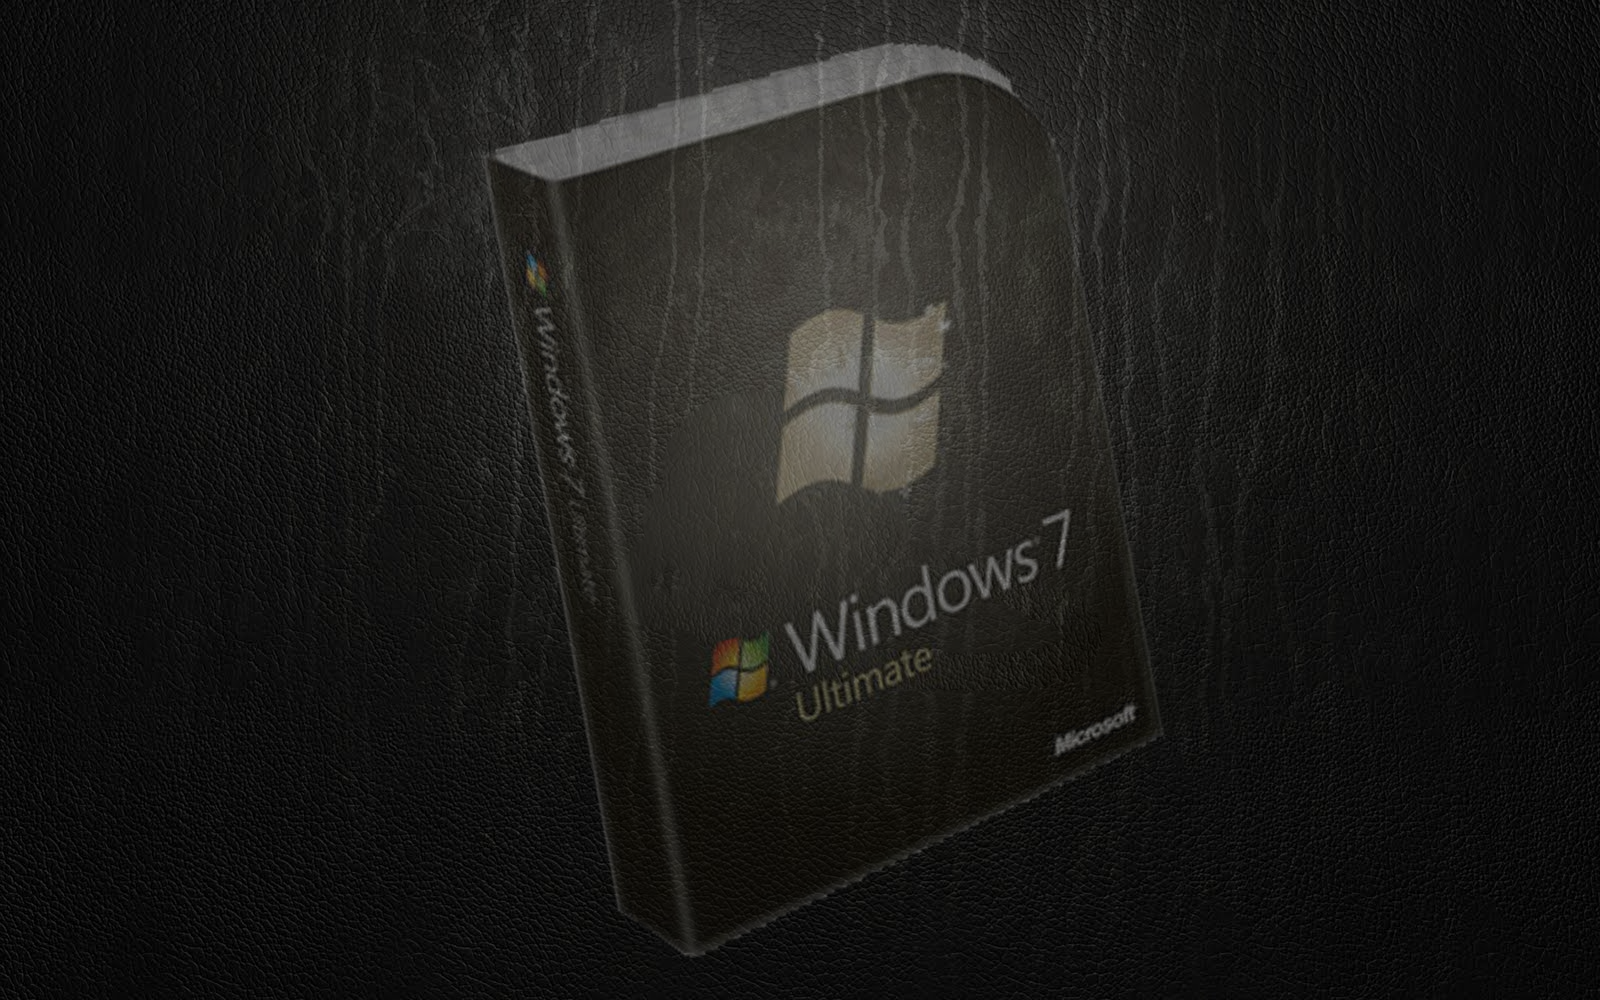 Post Windows 7 Ultimate HD Wallpaper Appeared First On 1600x1000